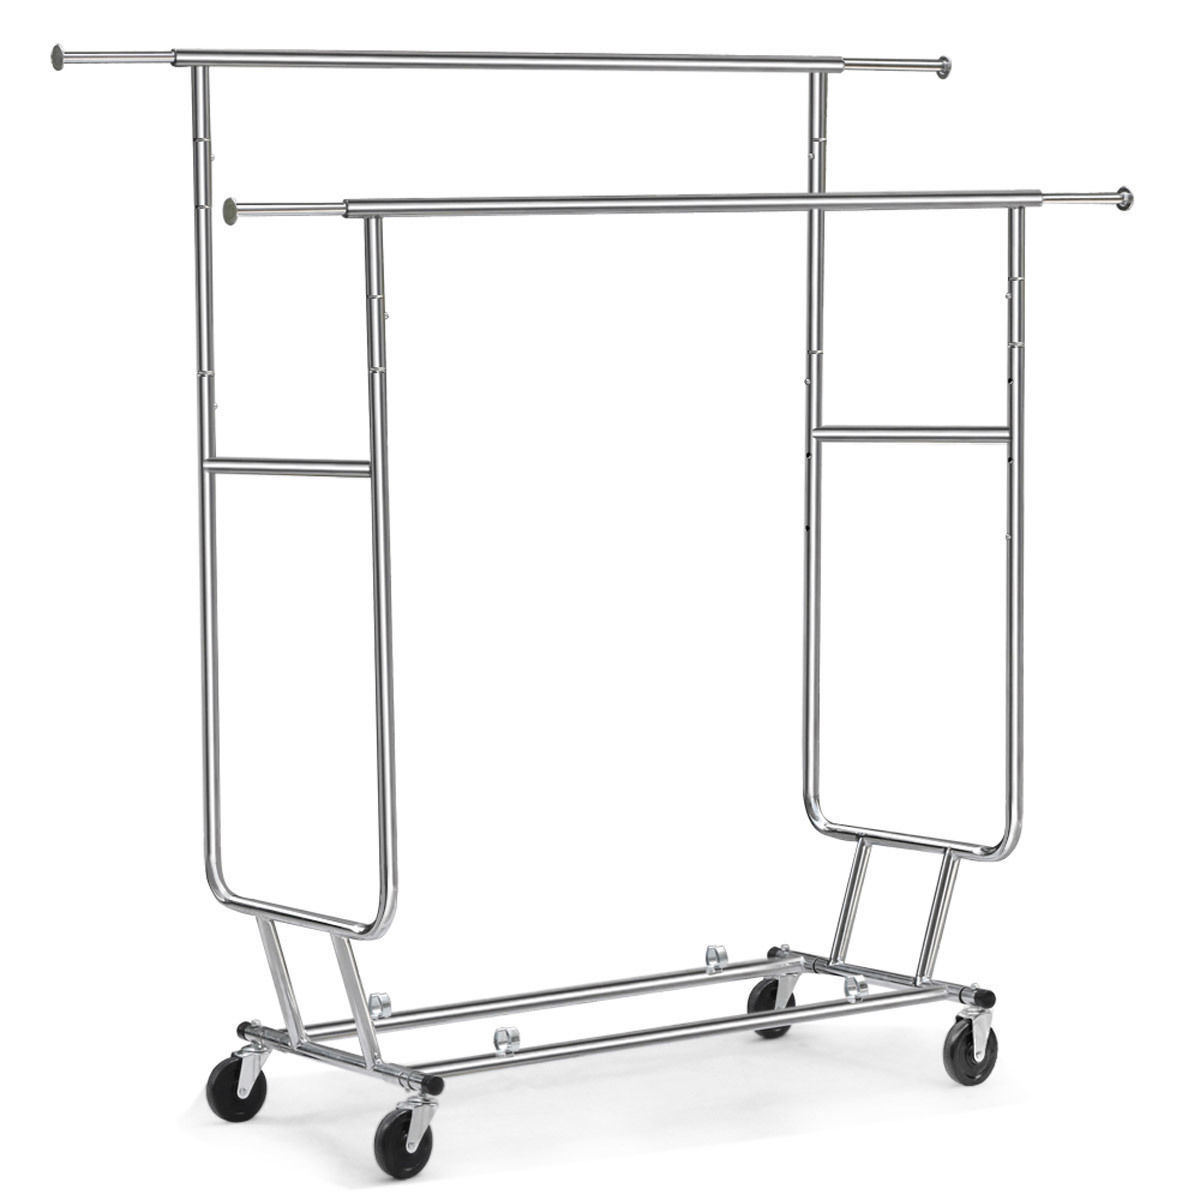 Ktaxon Heavy Duty Steel Double-bar Garment Rack Hanger Silver